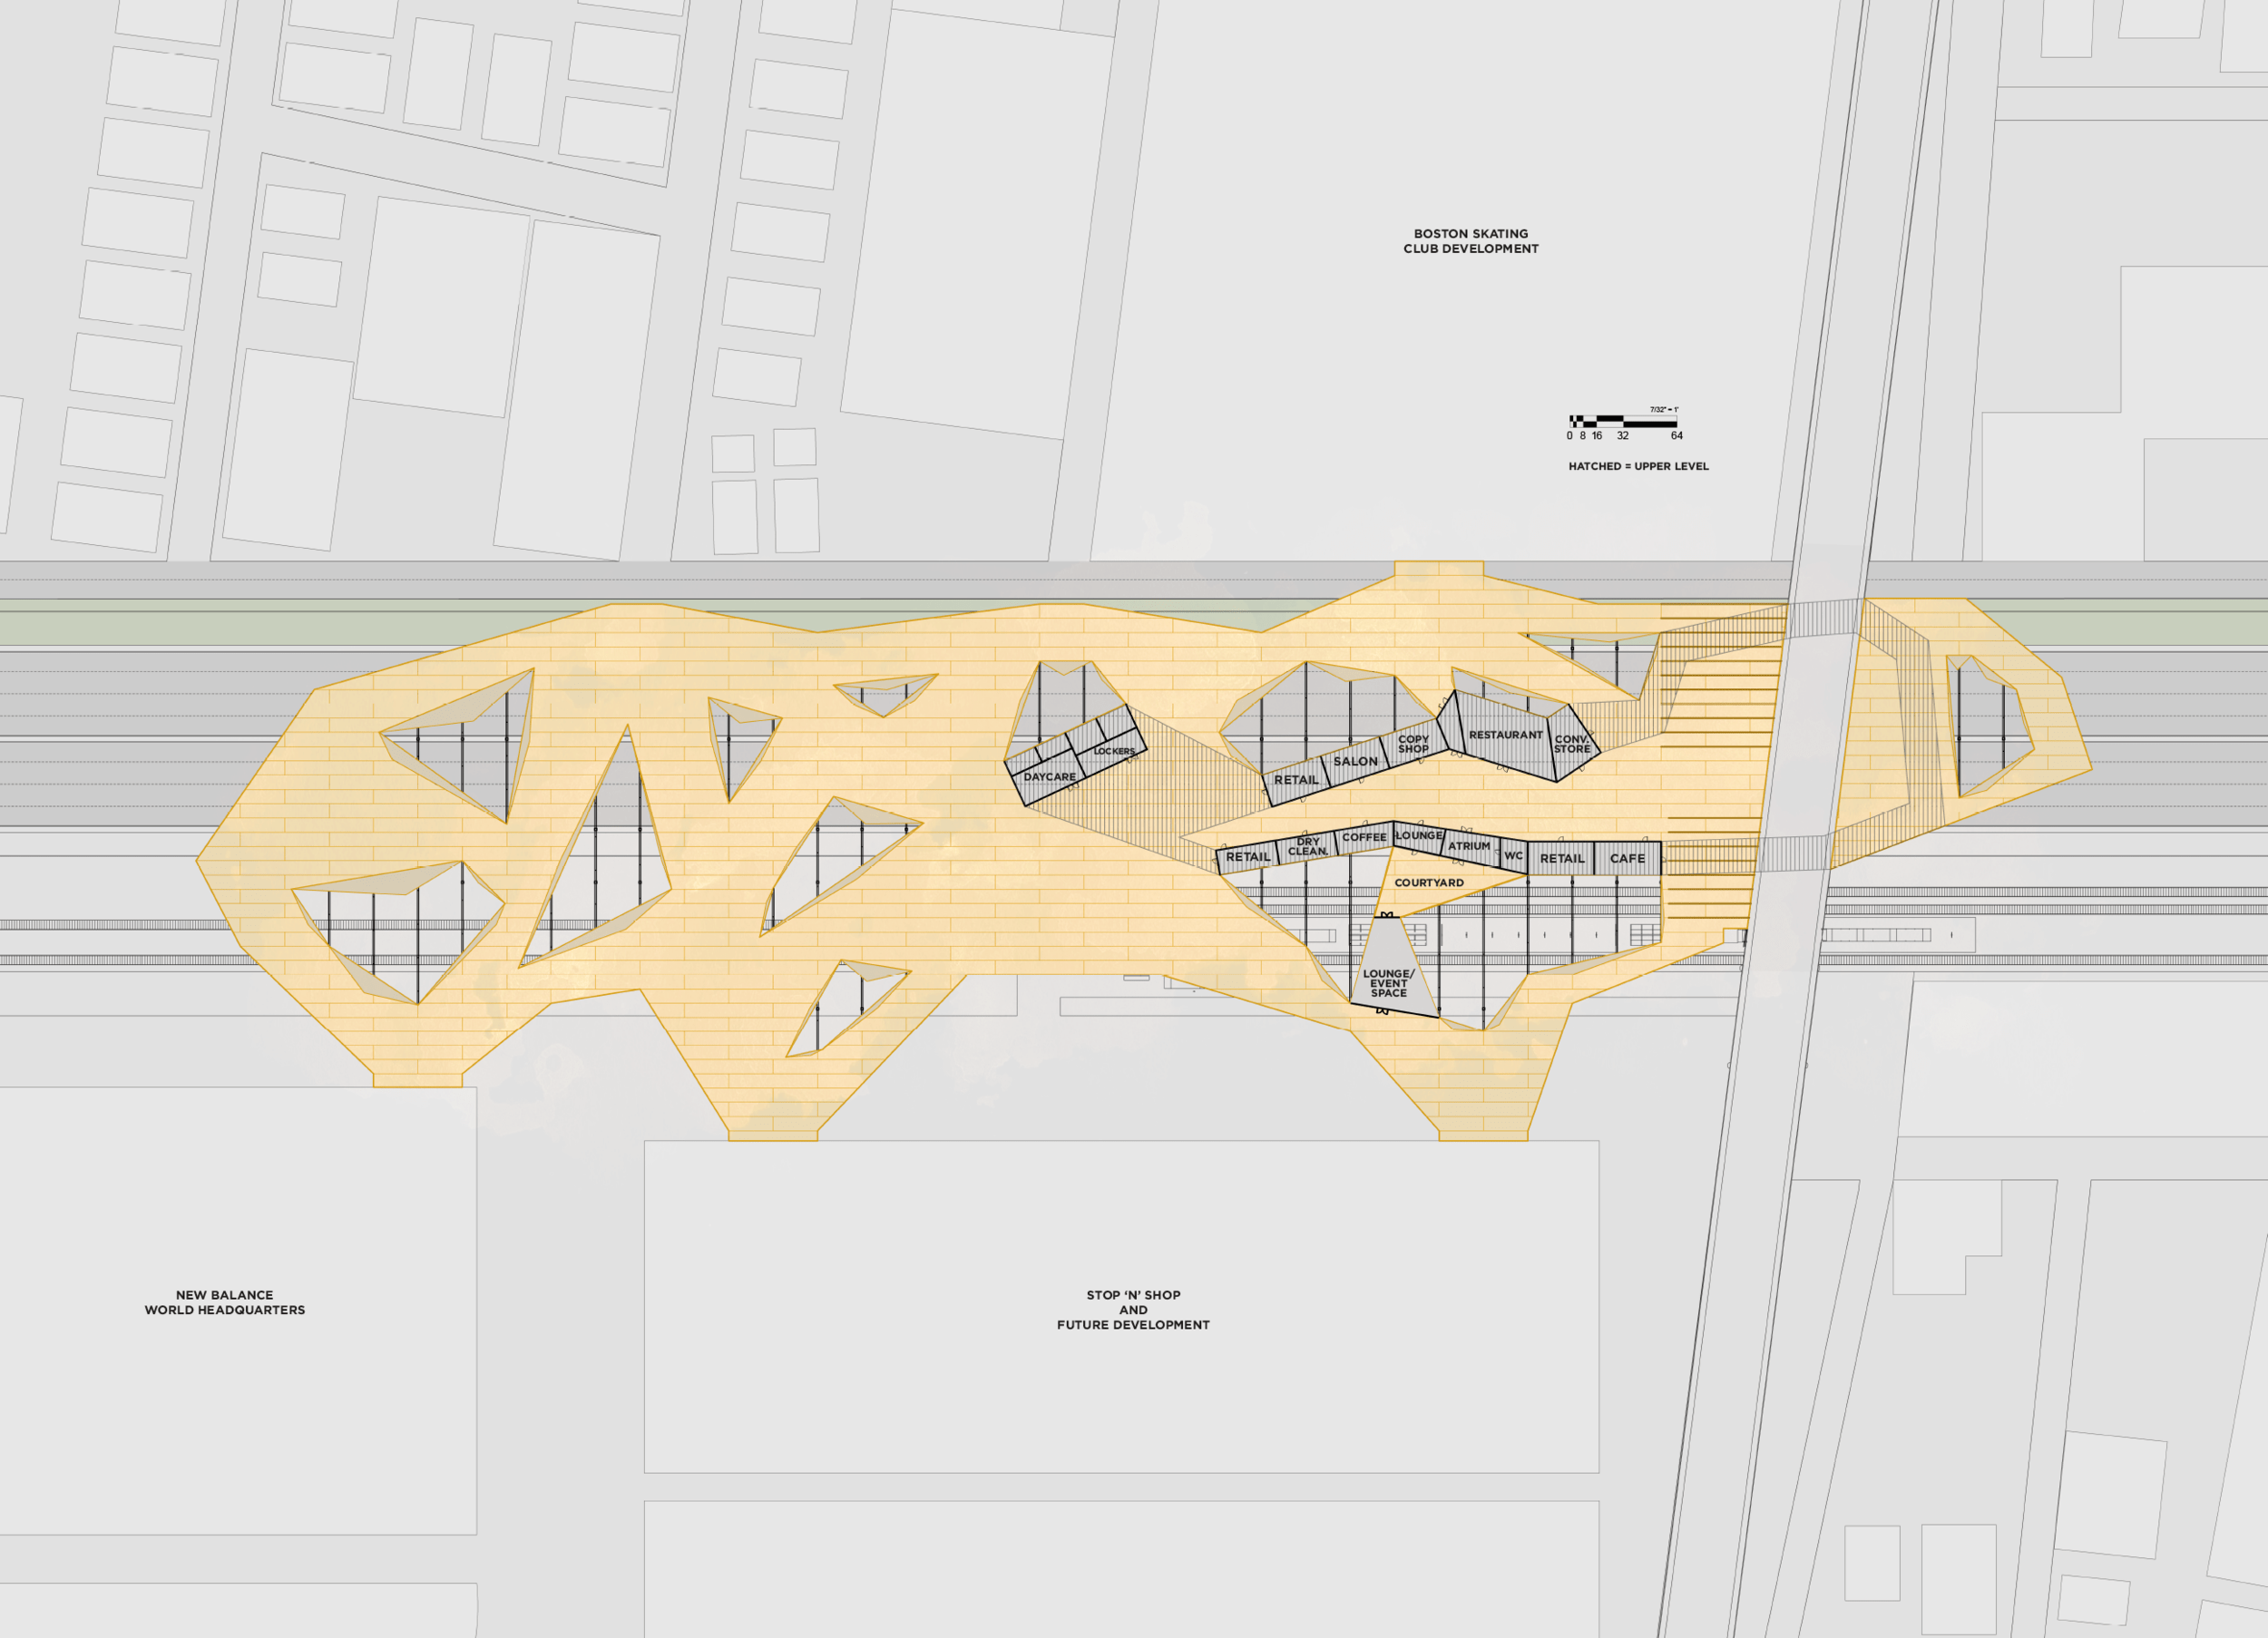 plan diagram of full deck layout and how it s situated within the urban context autocad [ 2500 x 1806 Pixel ]